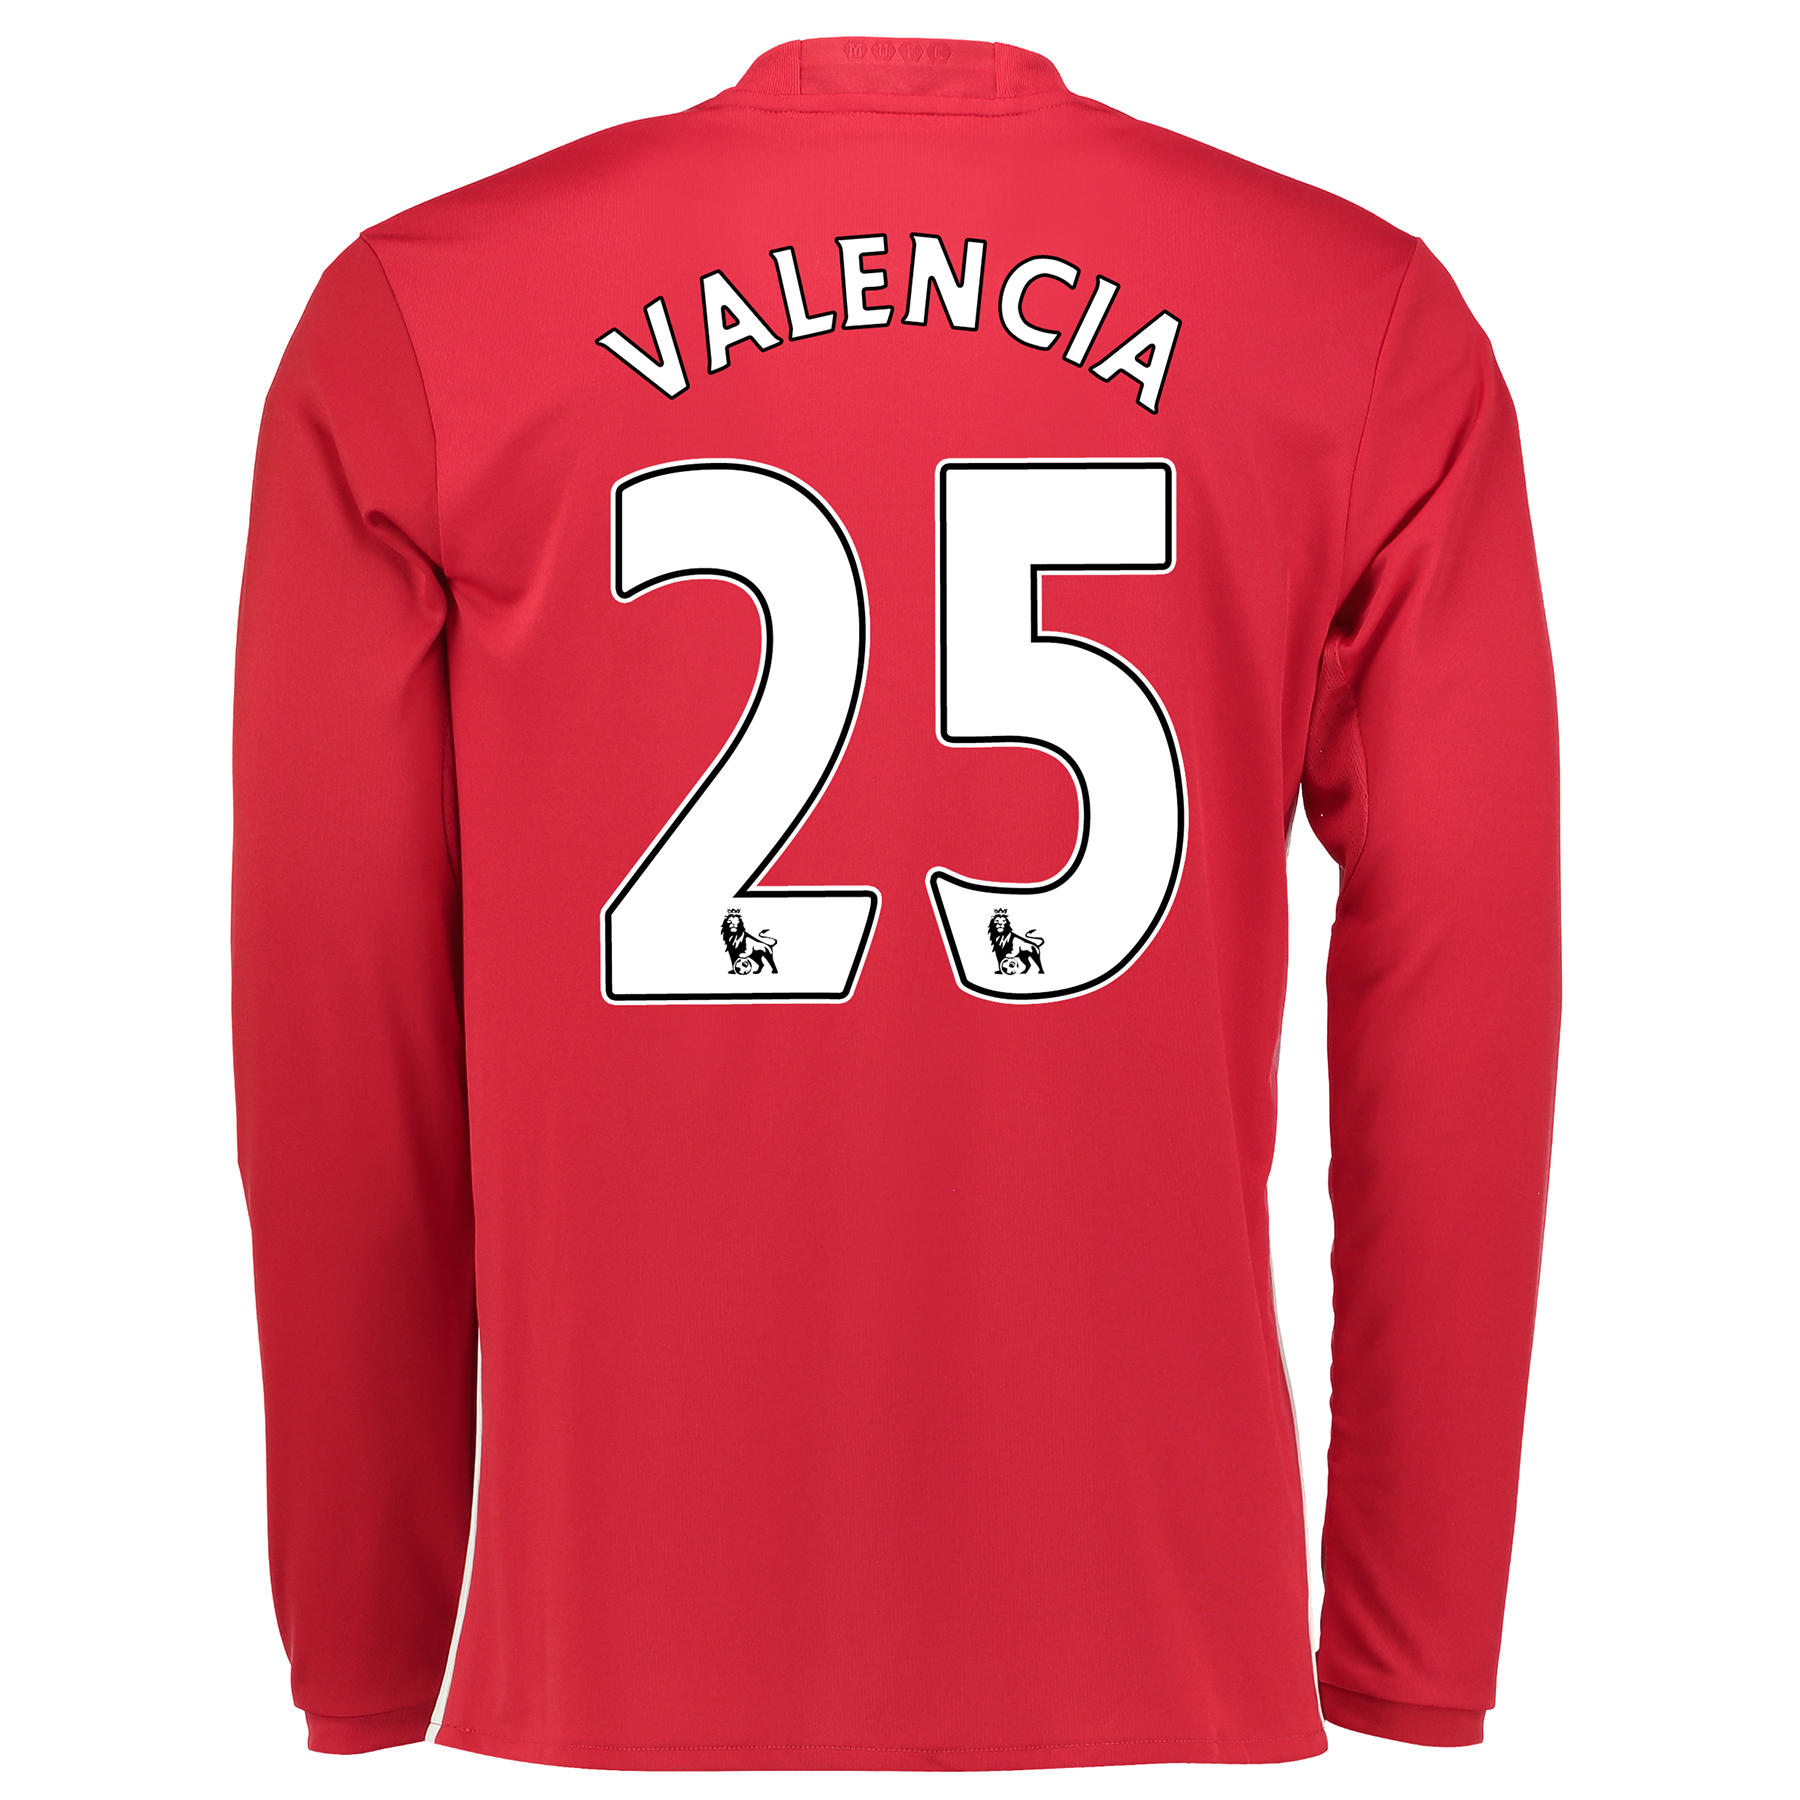 Manchester United Home Shirt 2016-17 - Long Sleeve with Valencia 25 pr